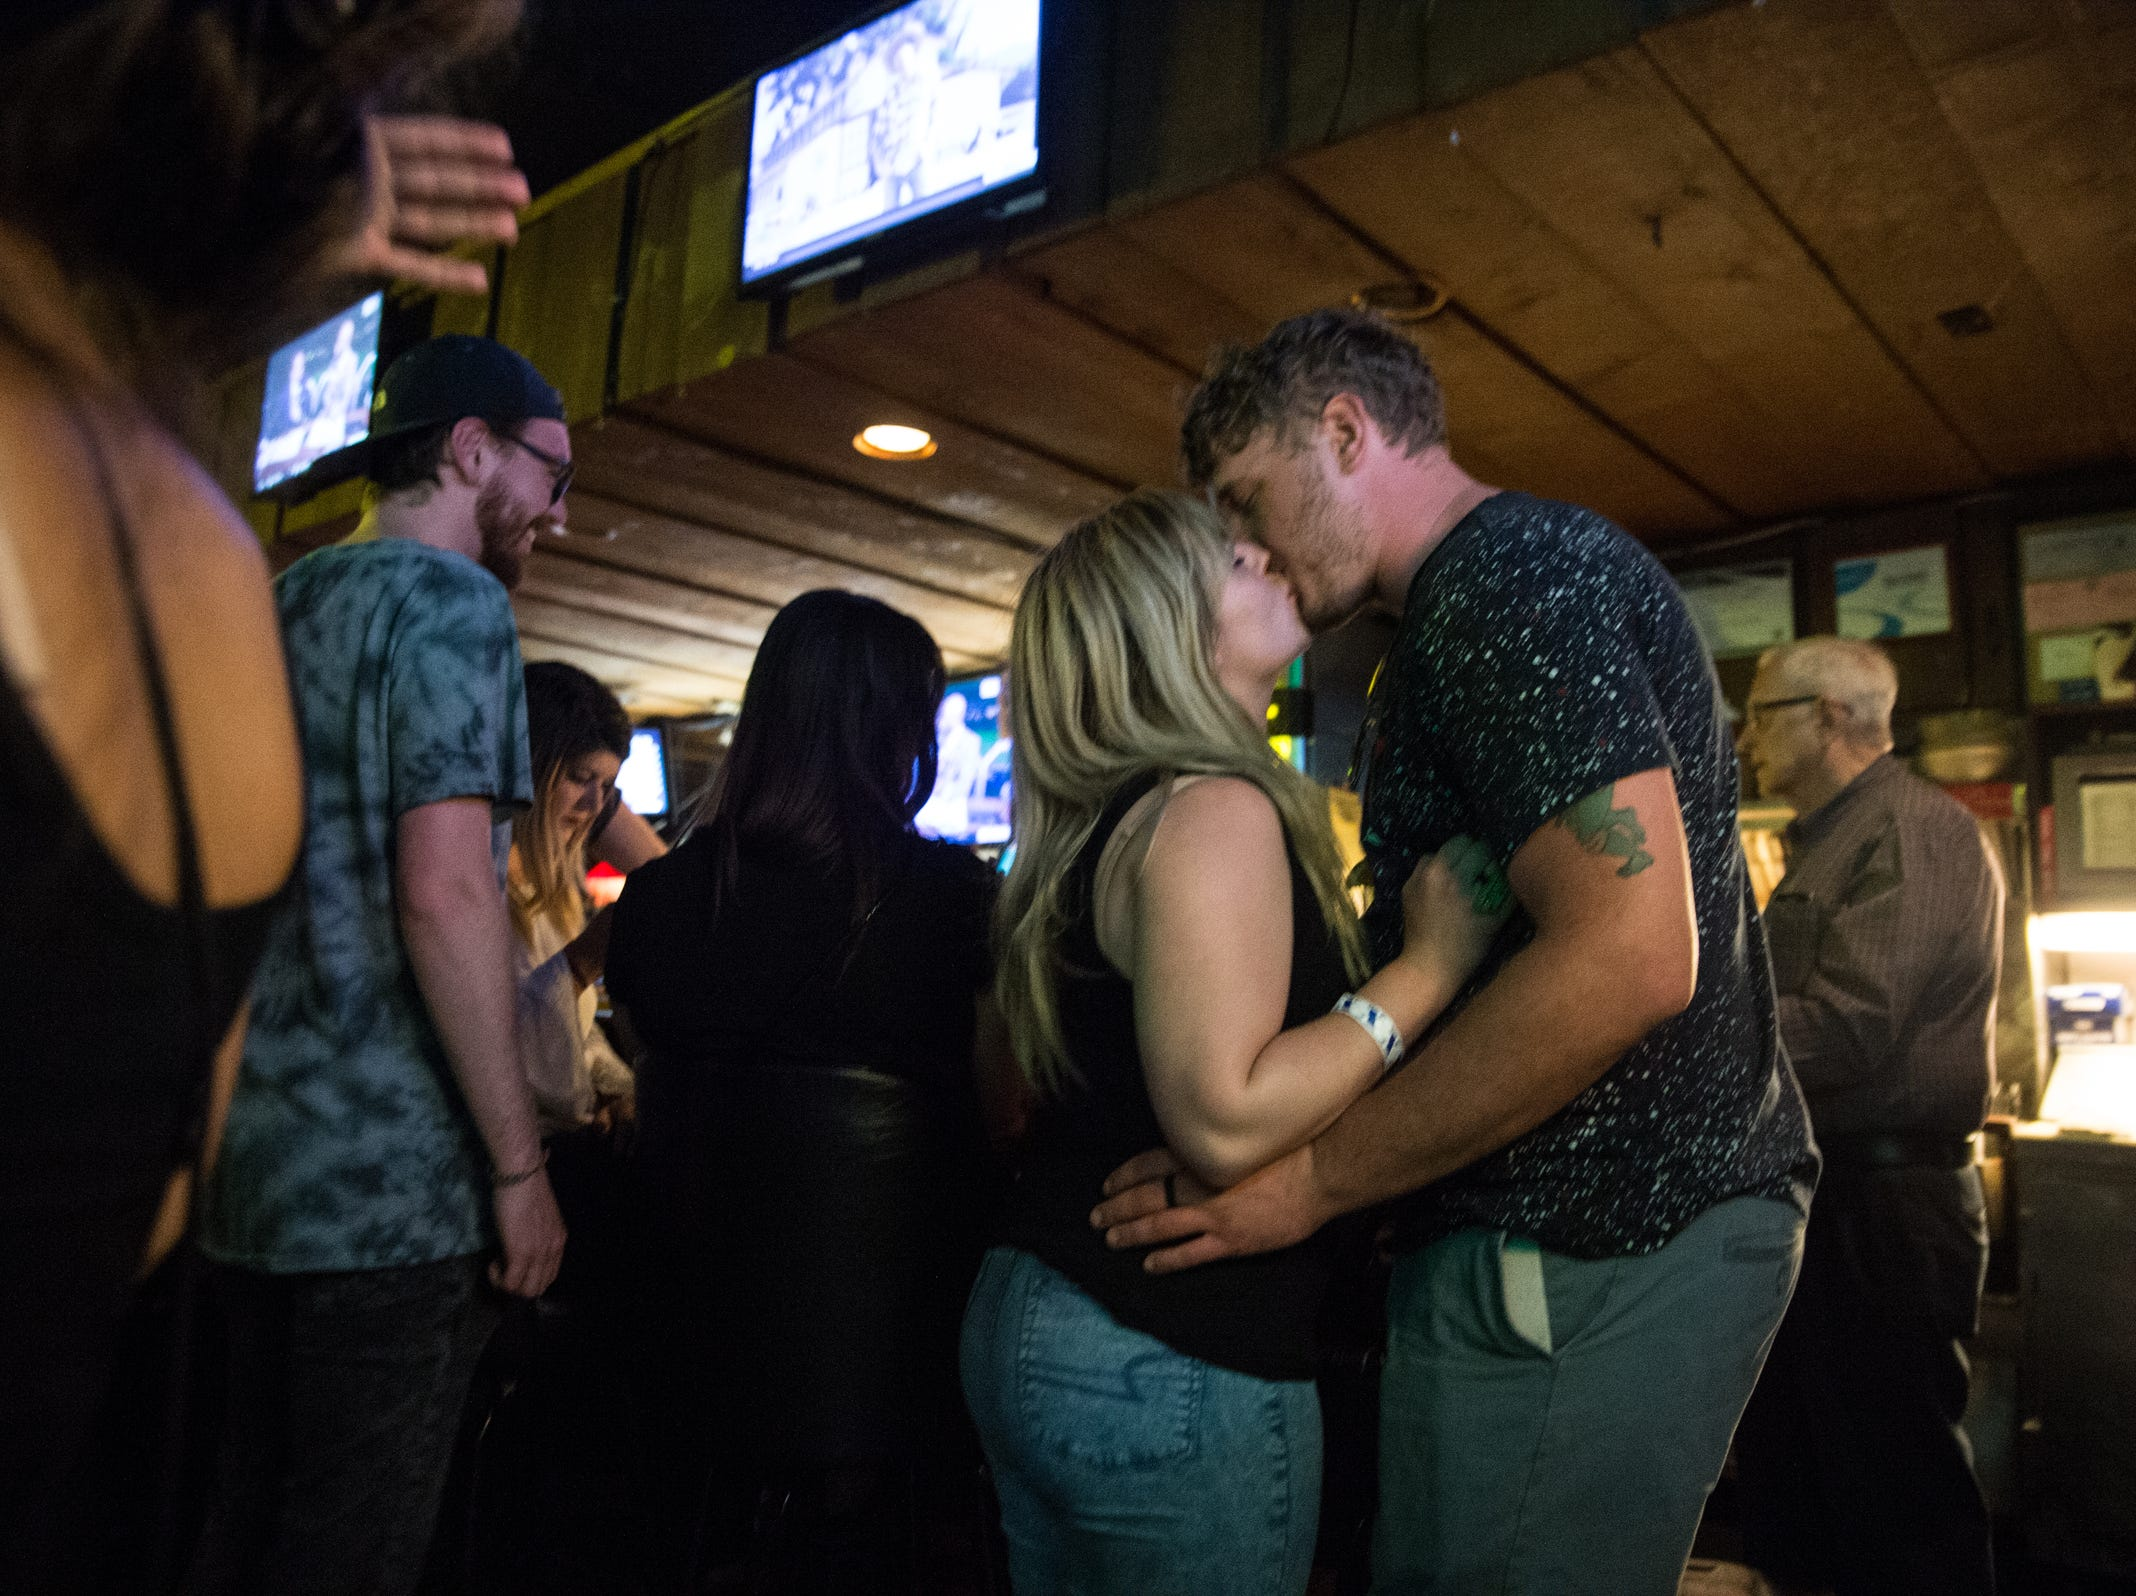 A couple kisses at Sneakers Pub in Ferndale on Friday, July 20, 2018.